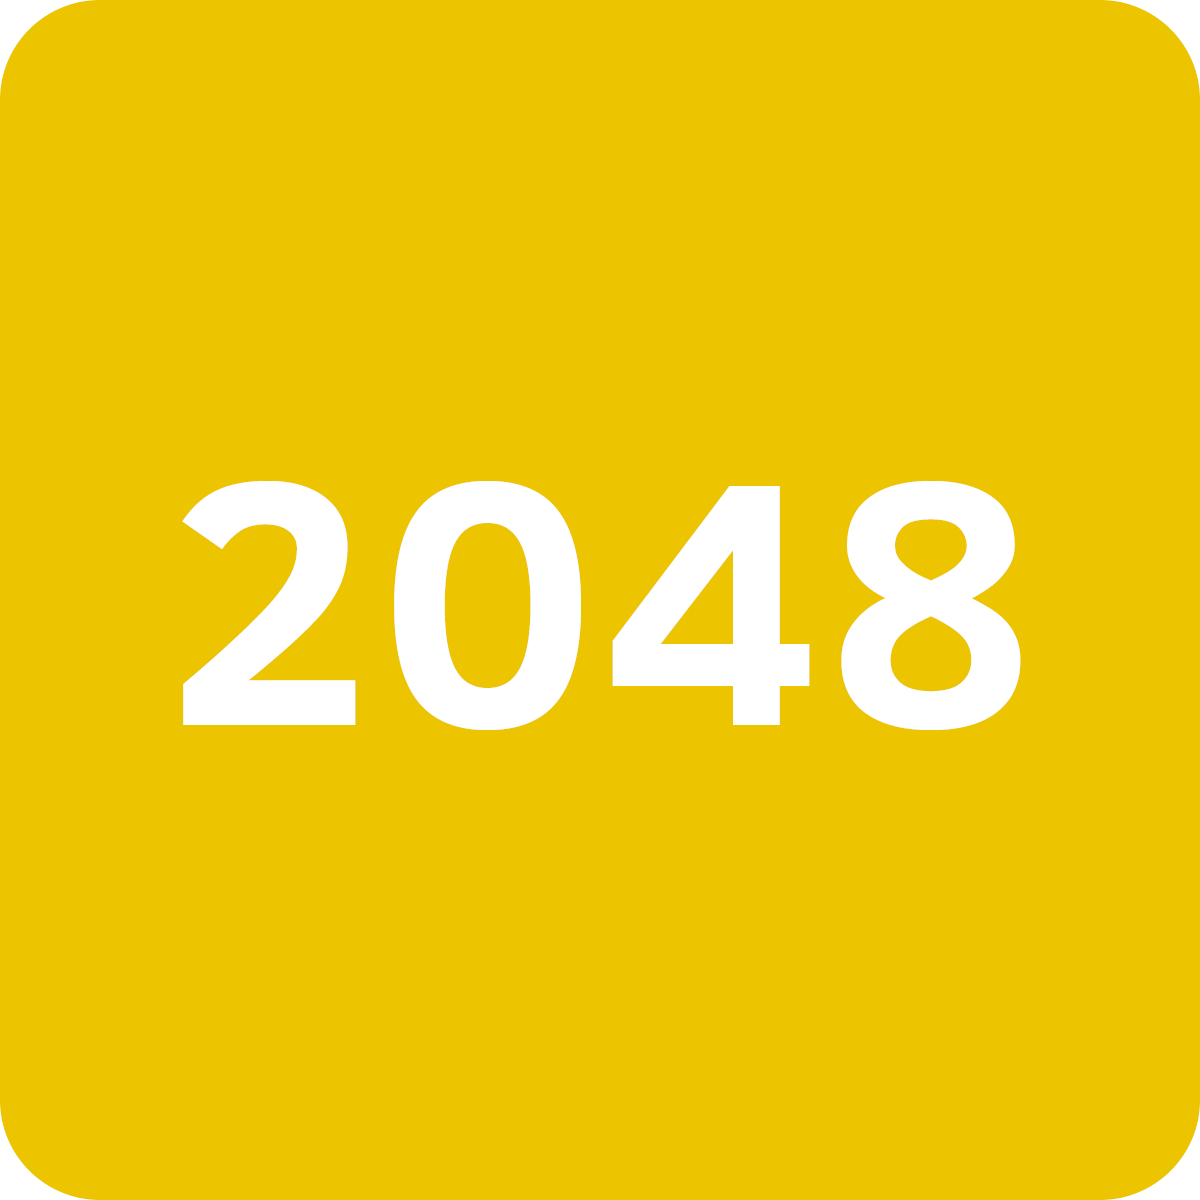 2048 puzzle game free download for android,windows pc and java